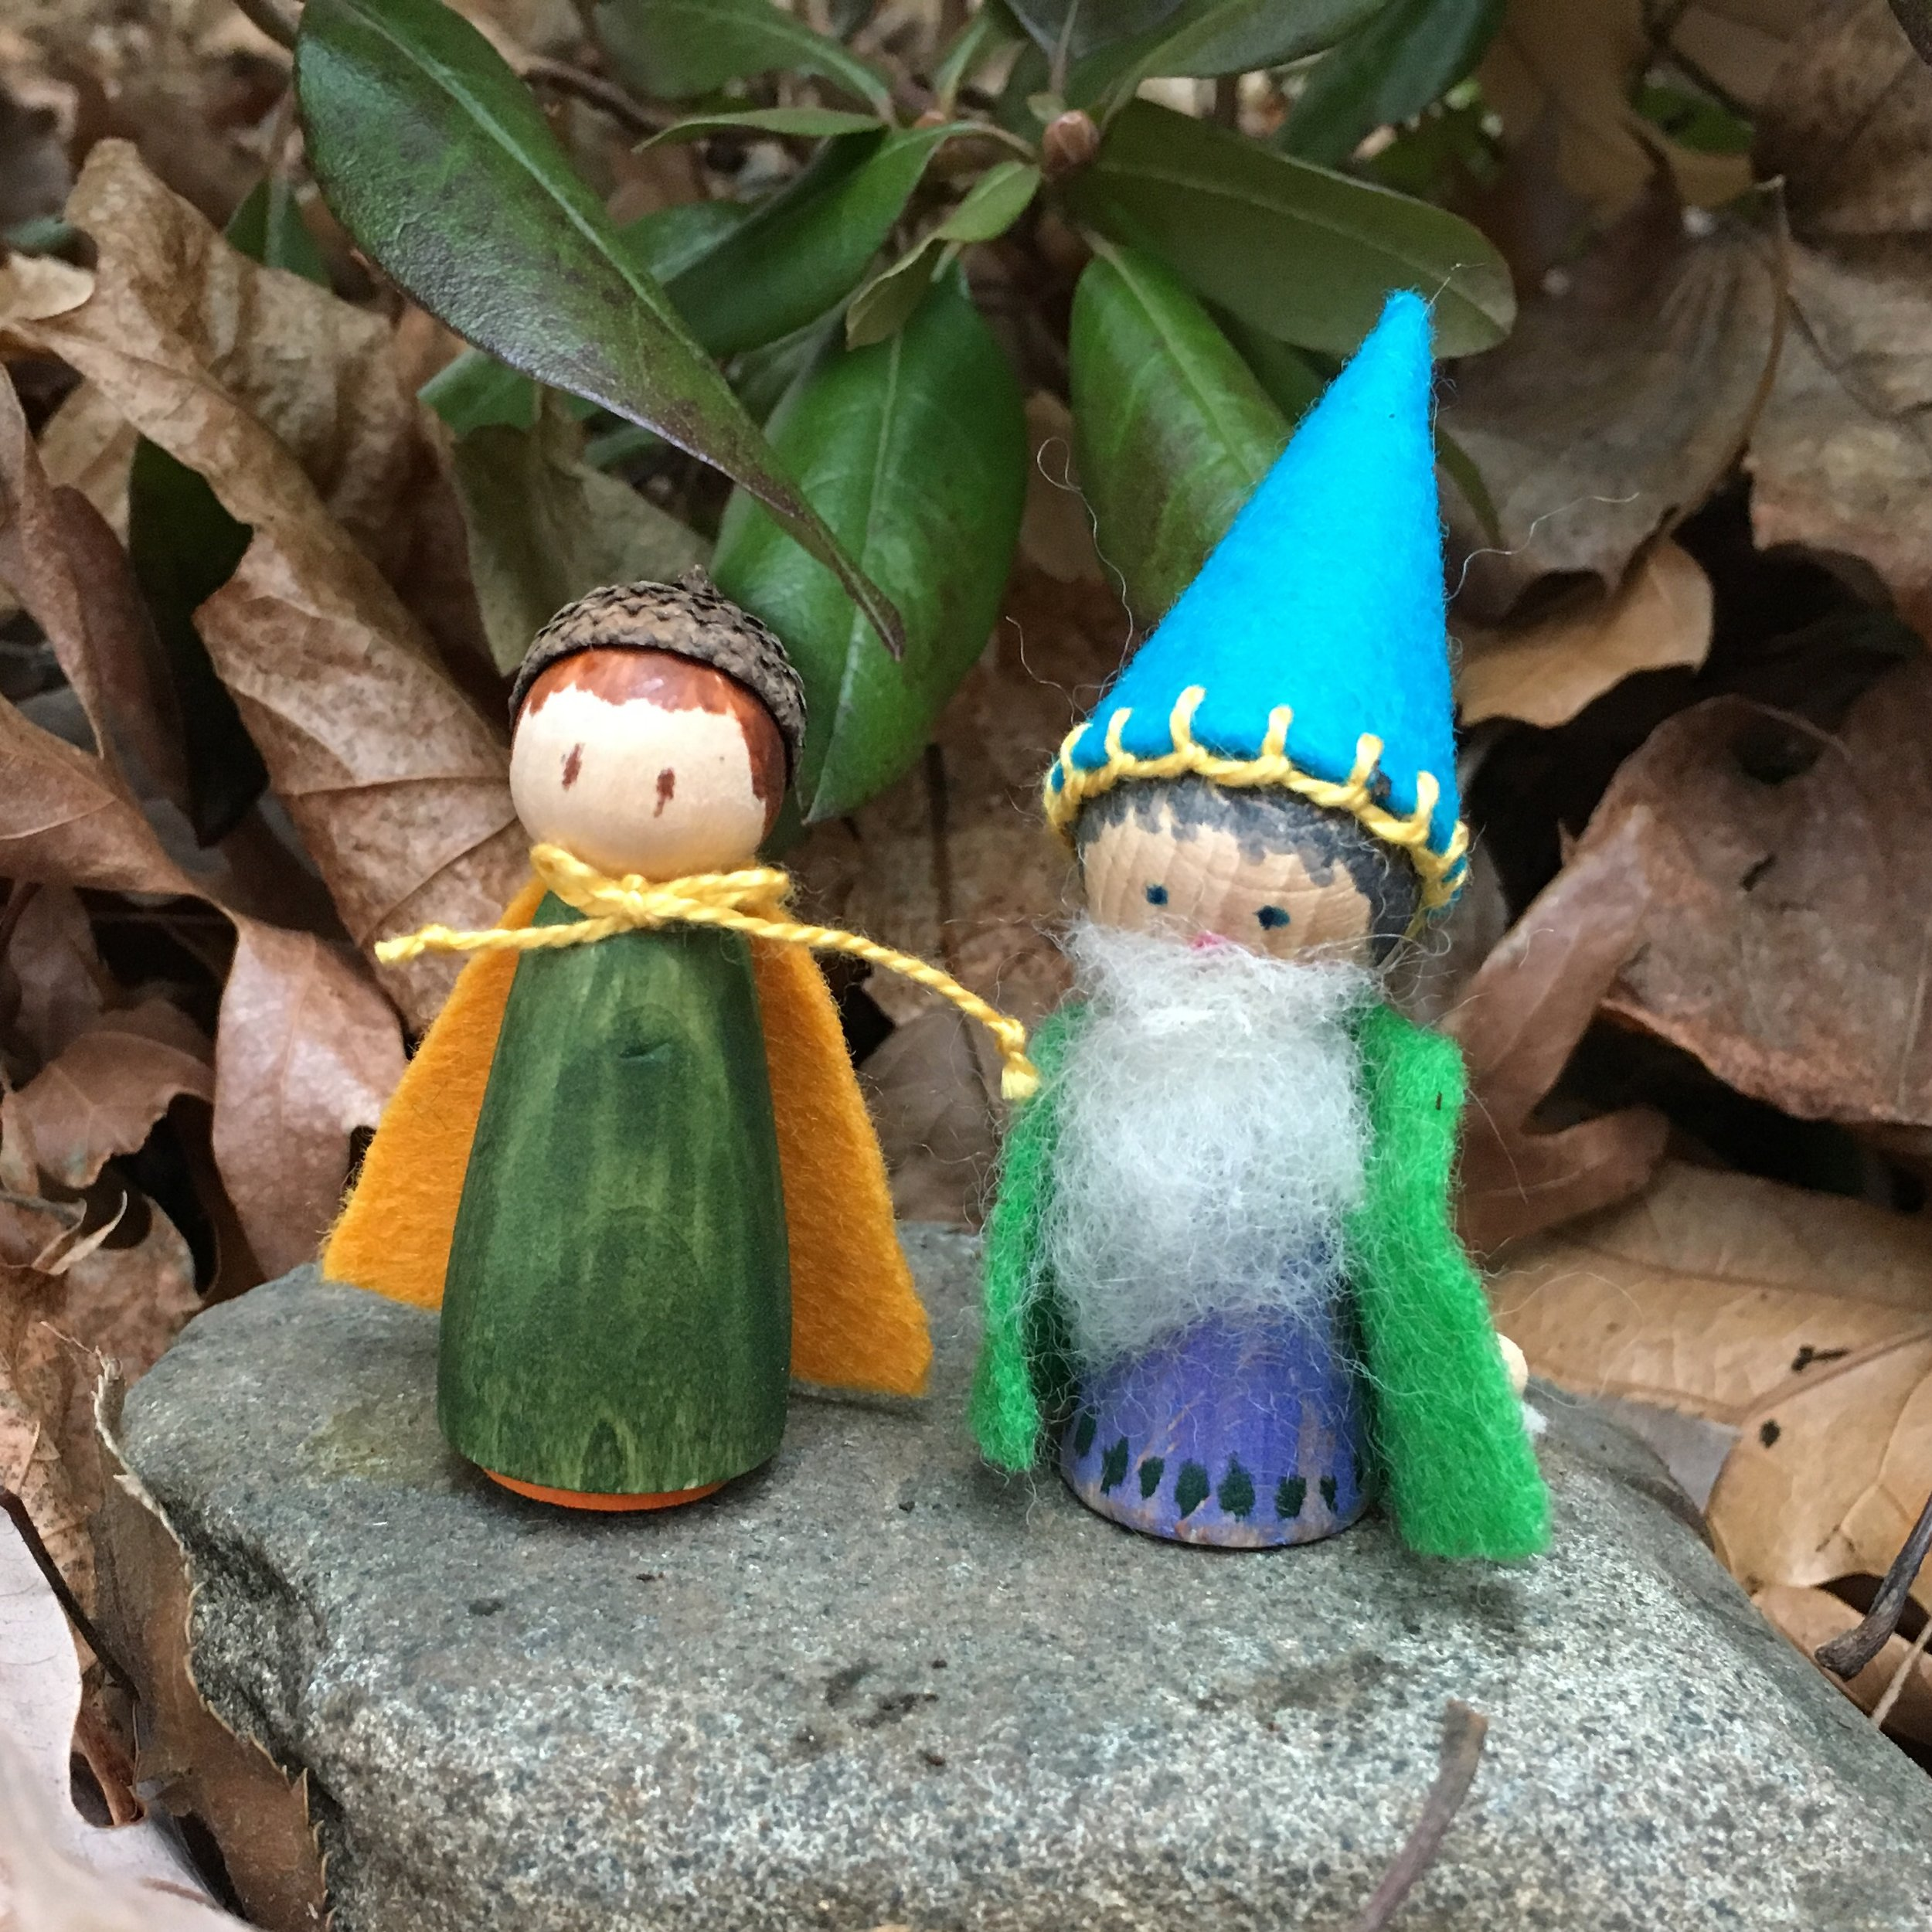 2 inch Acorn girl and a 2 3/4 inch Gnome